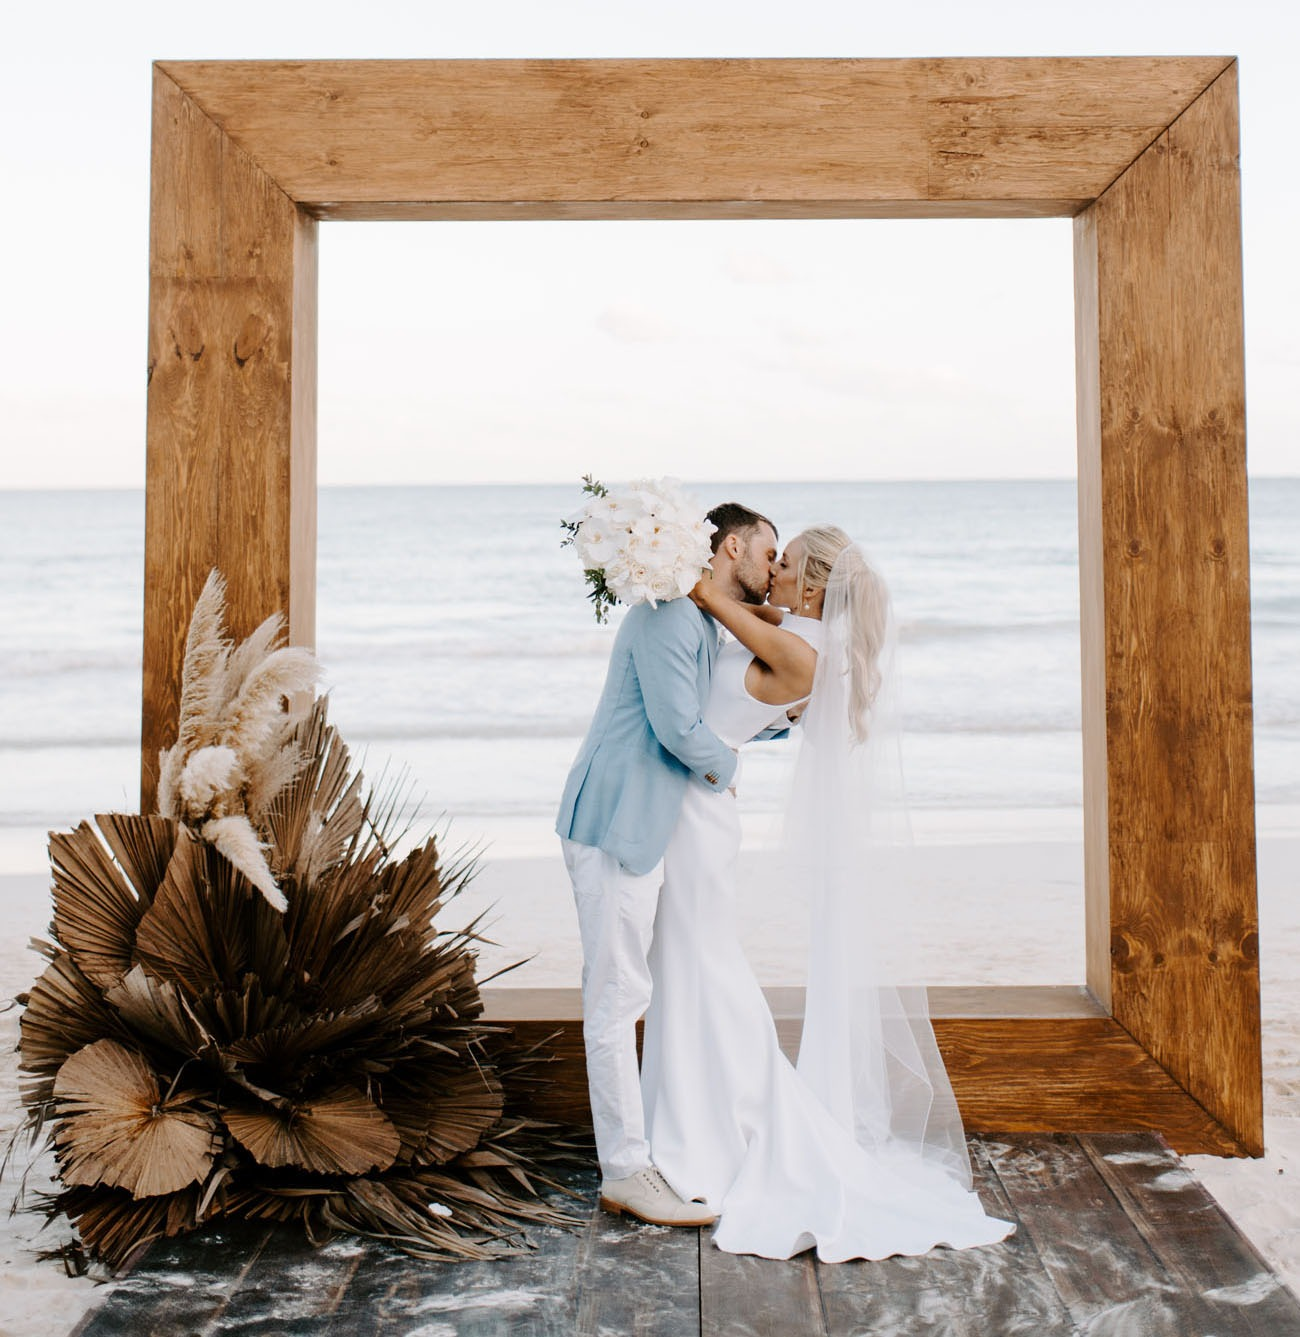 chunky wooden square DIY wedding backdrops for a beach wedding